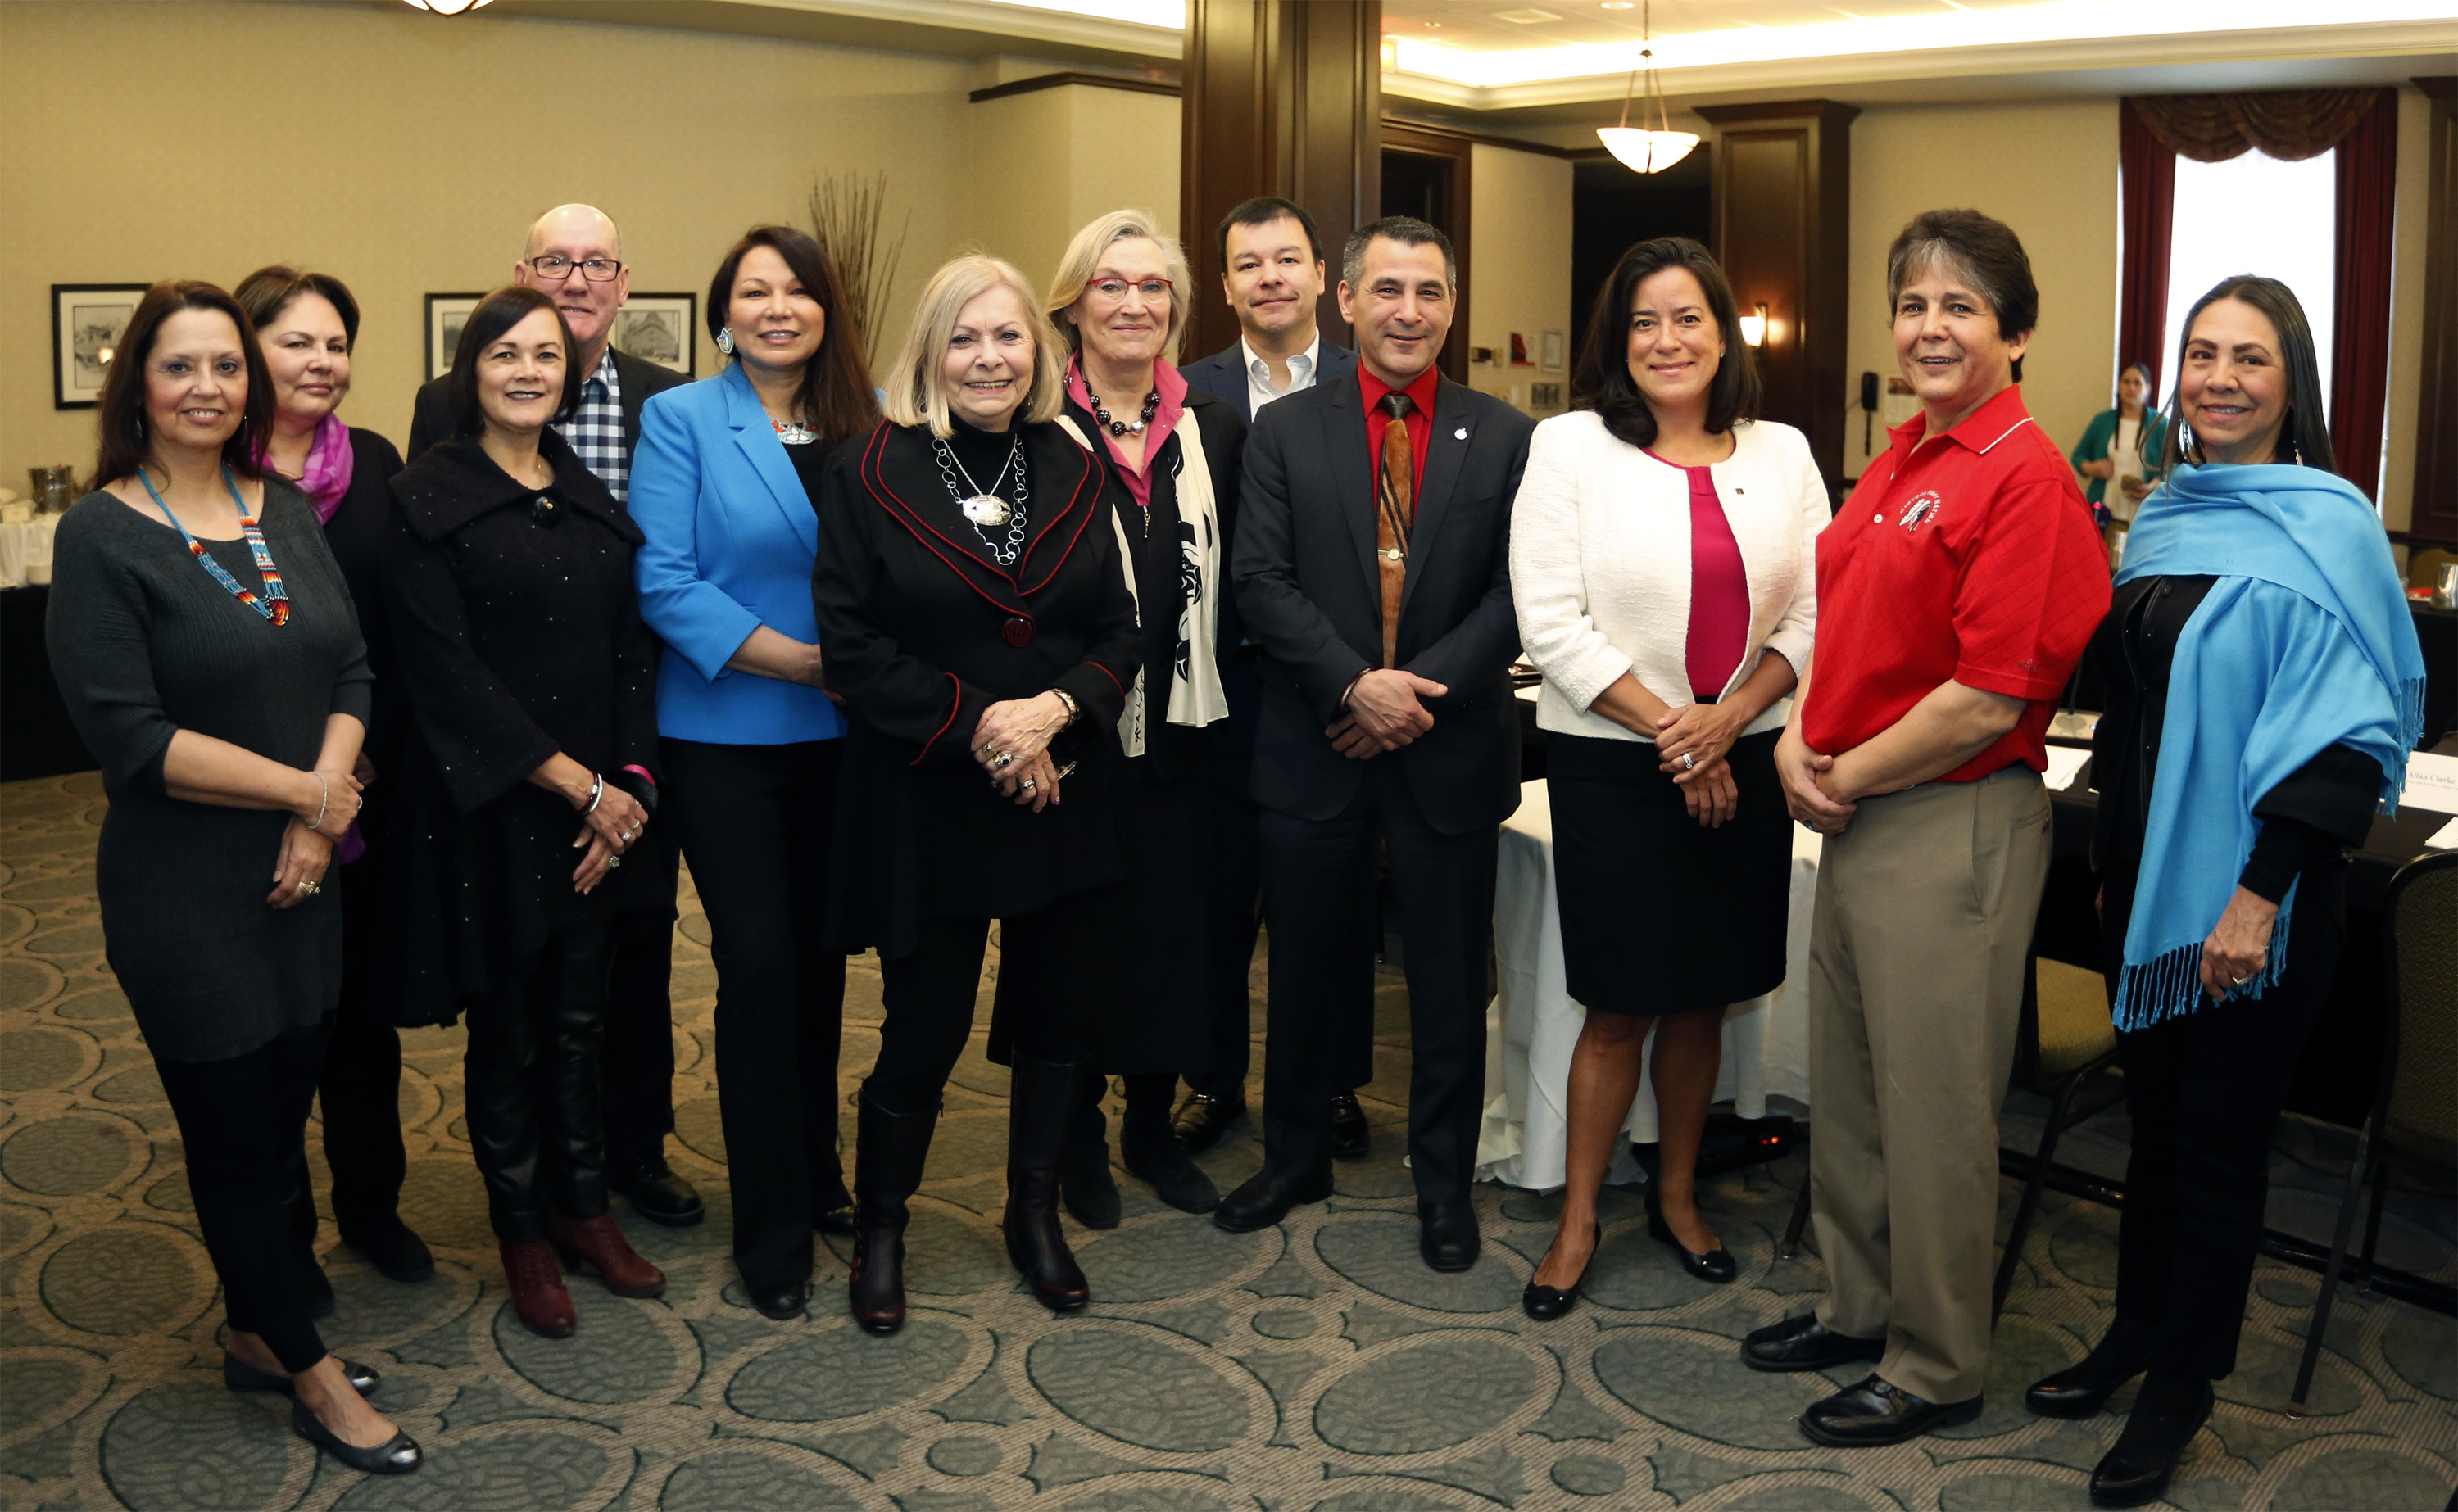 Pictured: Darlene Bernard, Dr. Marie Delorme, Hilda Broomfield Letemplier, Chief Terrance Paul, Dawn Madahbee, Dr. Ruth Williams, Minister Bennett,  Adam Fiddler, Minister Tootoo, Minister Wilson-Raybould, Chief Clarence Louie, Sharon Stinson Henry